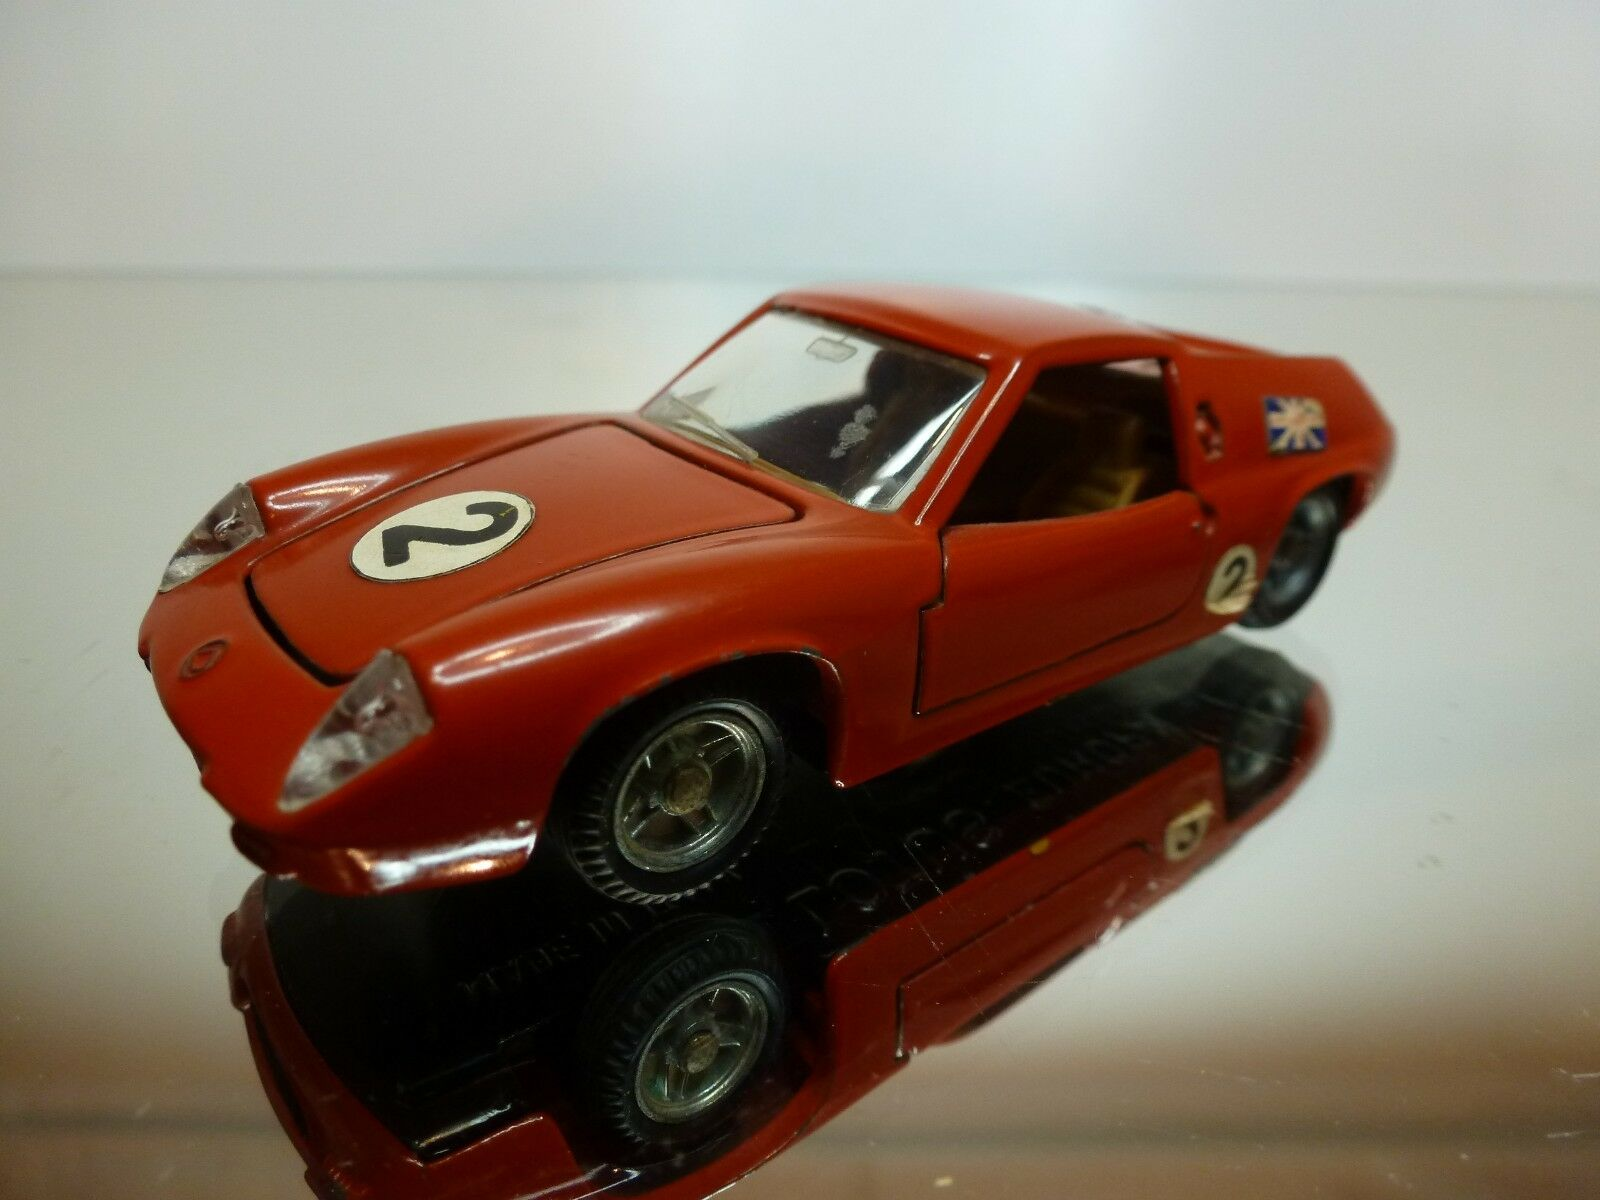 MEBETOYS A-39 A39 LOTUS  EUROPA - rouge 1 43 - GOOD CONDITION  60% de réduction